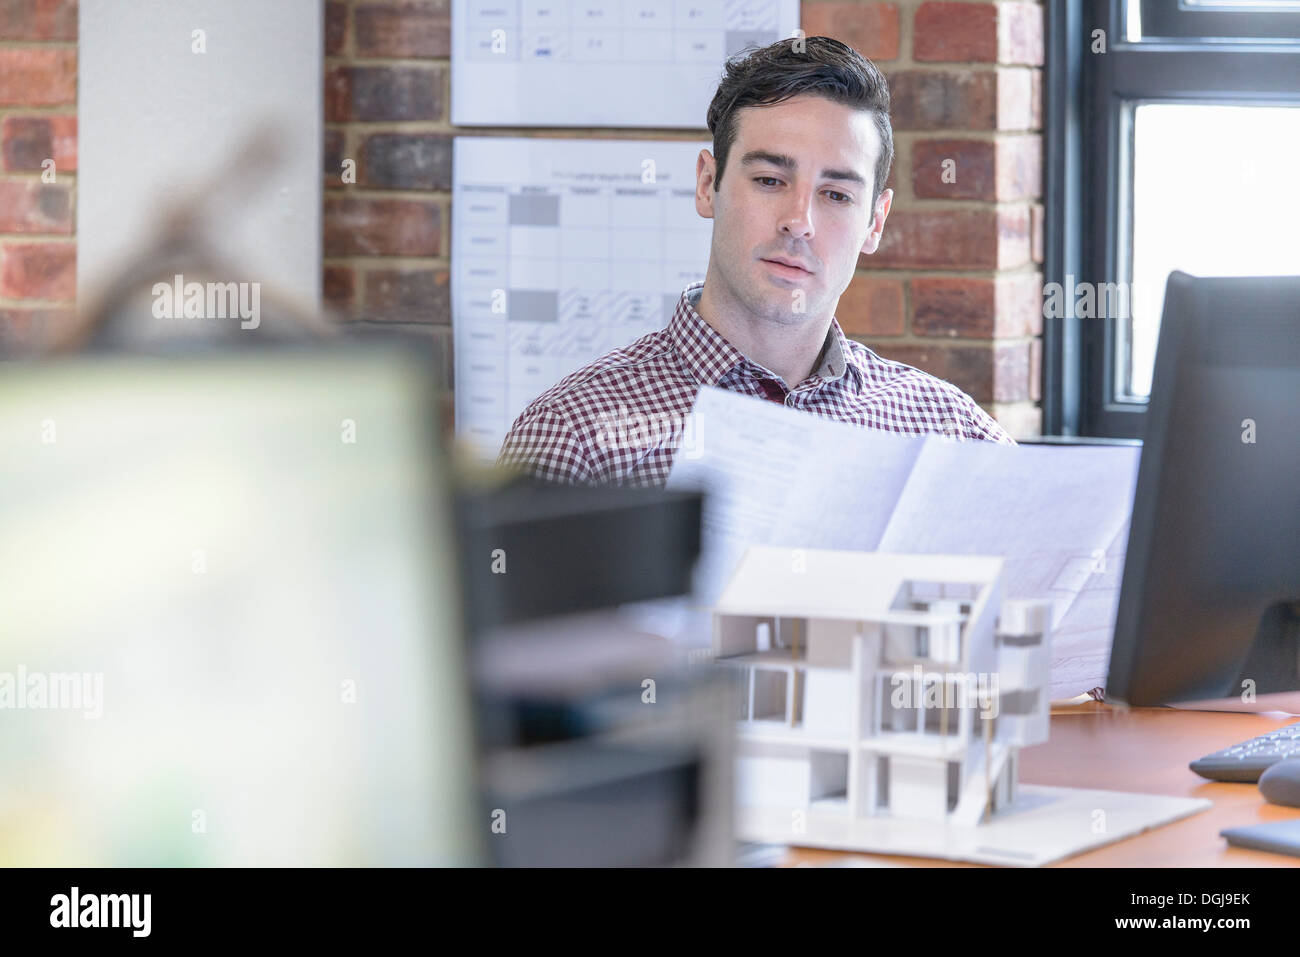 Architect inspecting plans at desk with model building - Stock Image